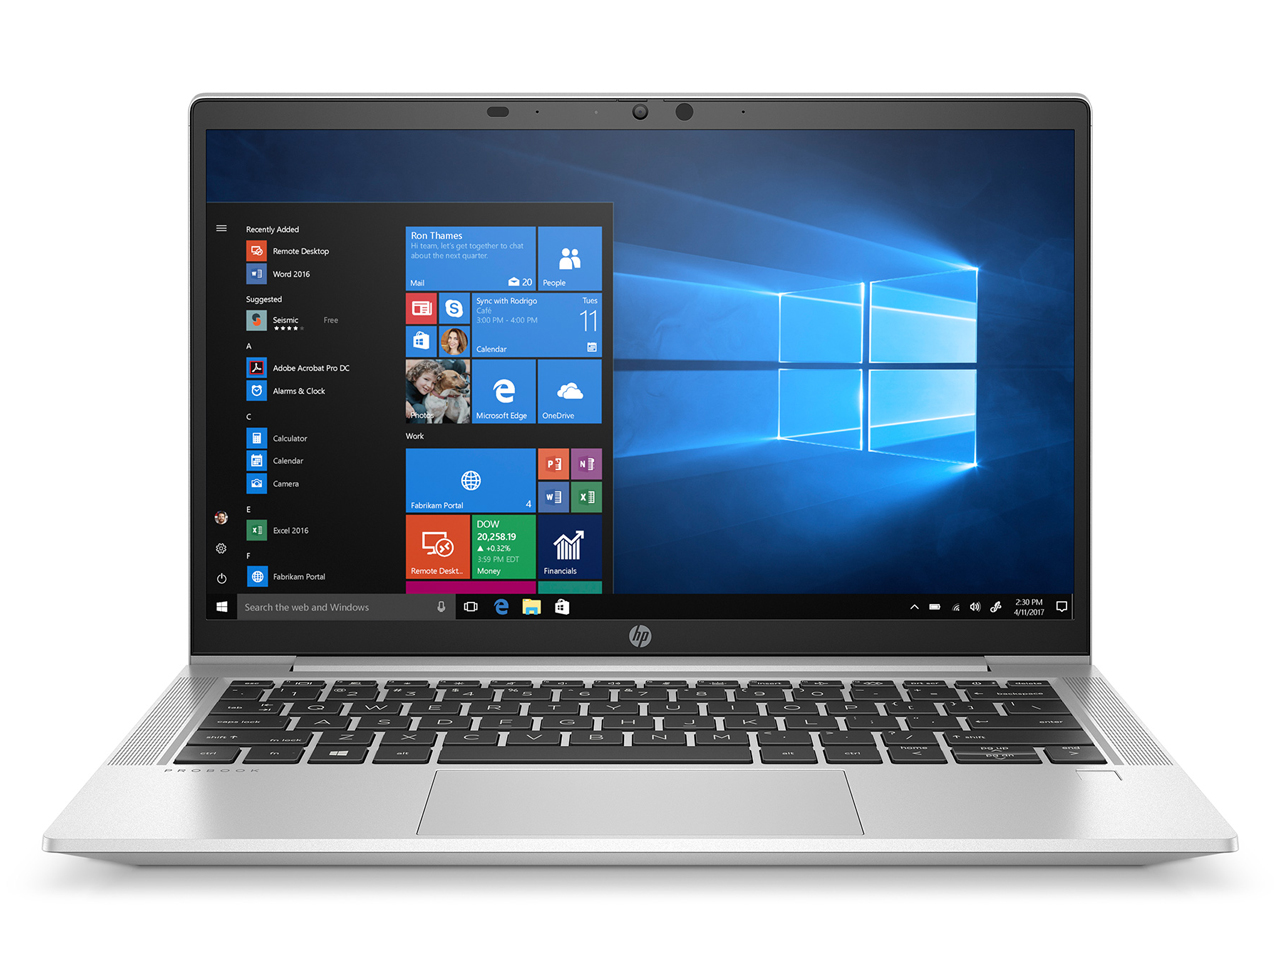 ProBook 635 Aero G7 Notebook PC Ryzen 5 4500U/8GBメモリ/256SSD/Windows 10 Home スタンダードモデル